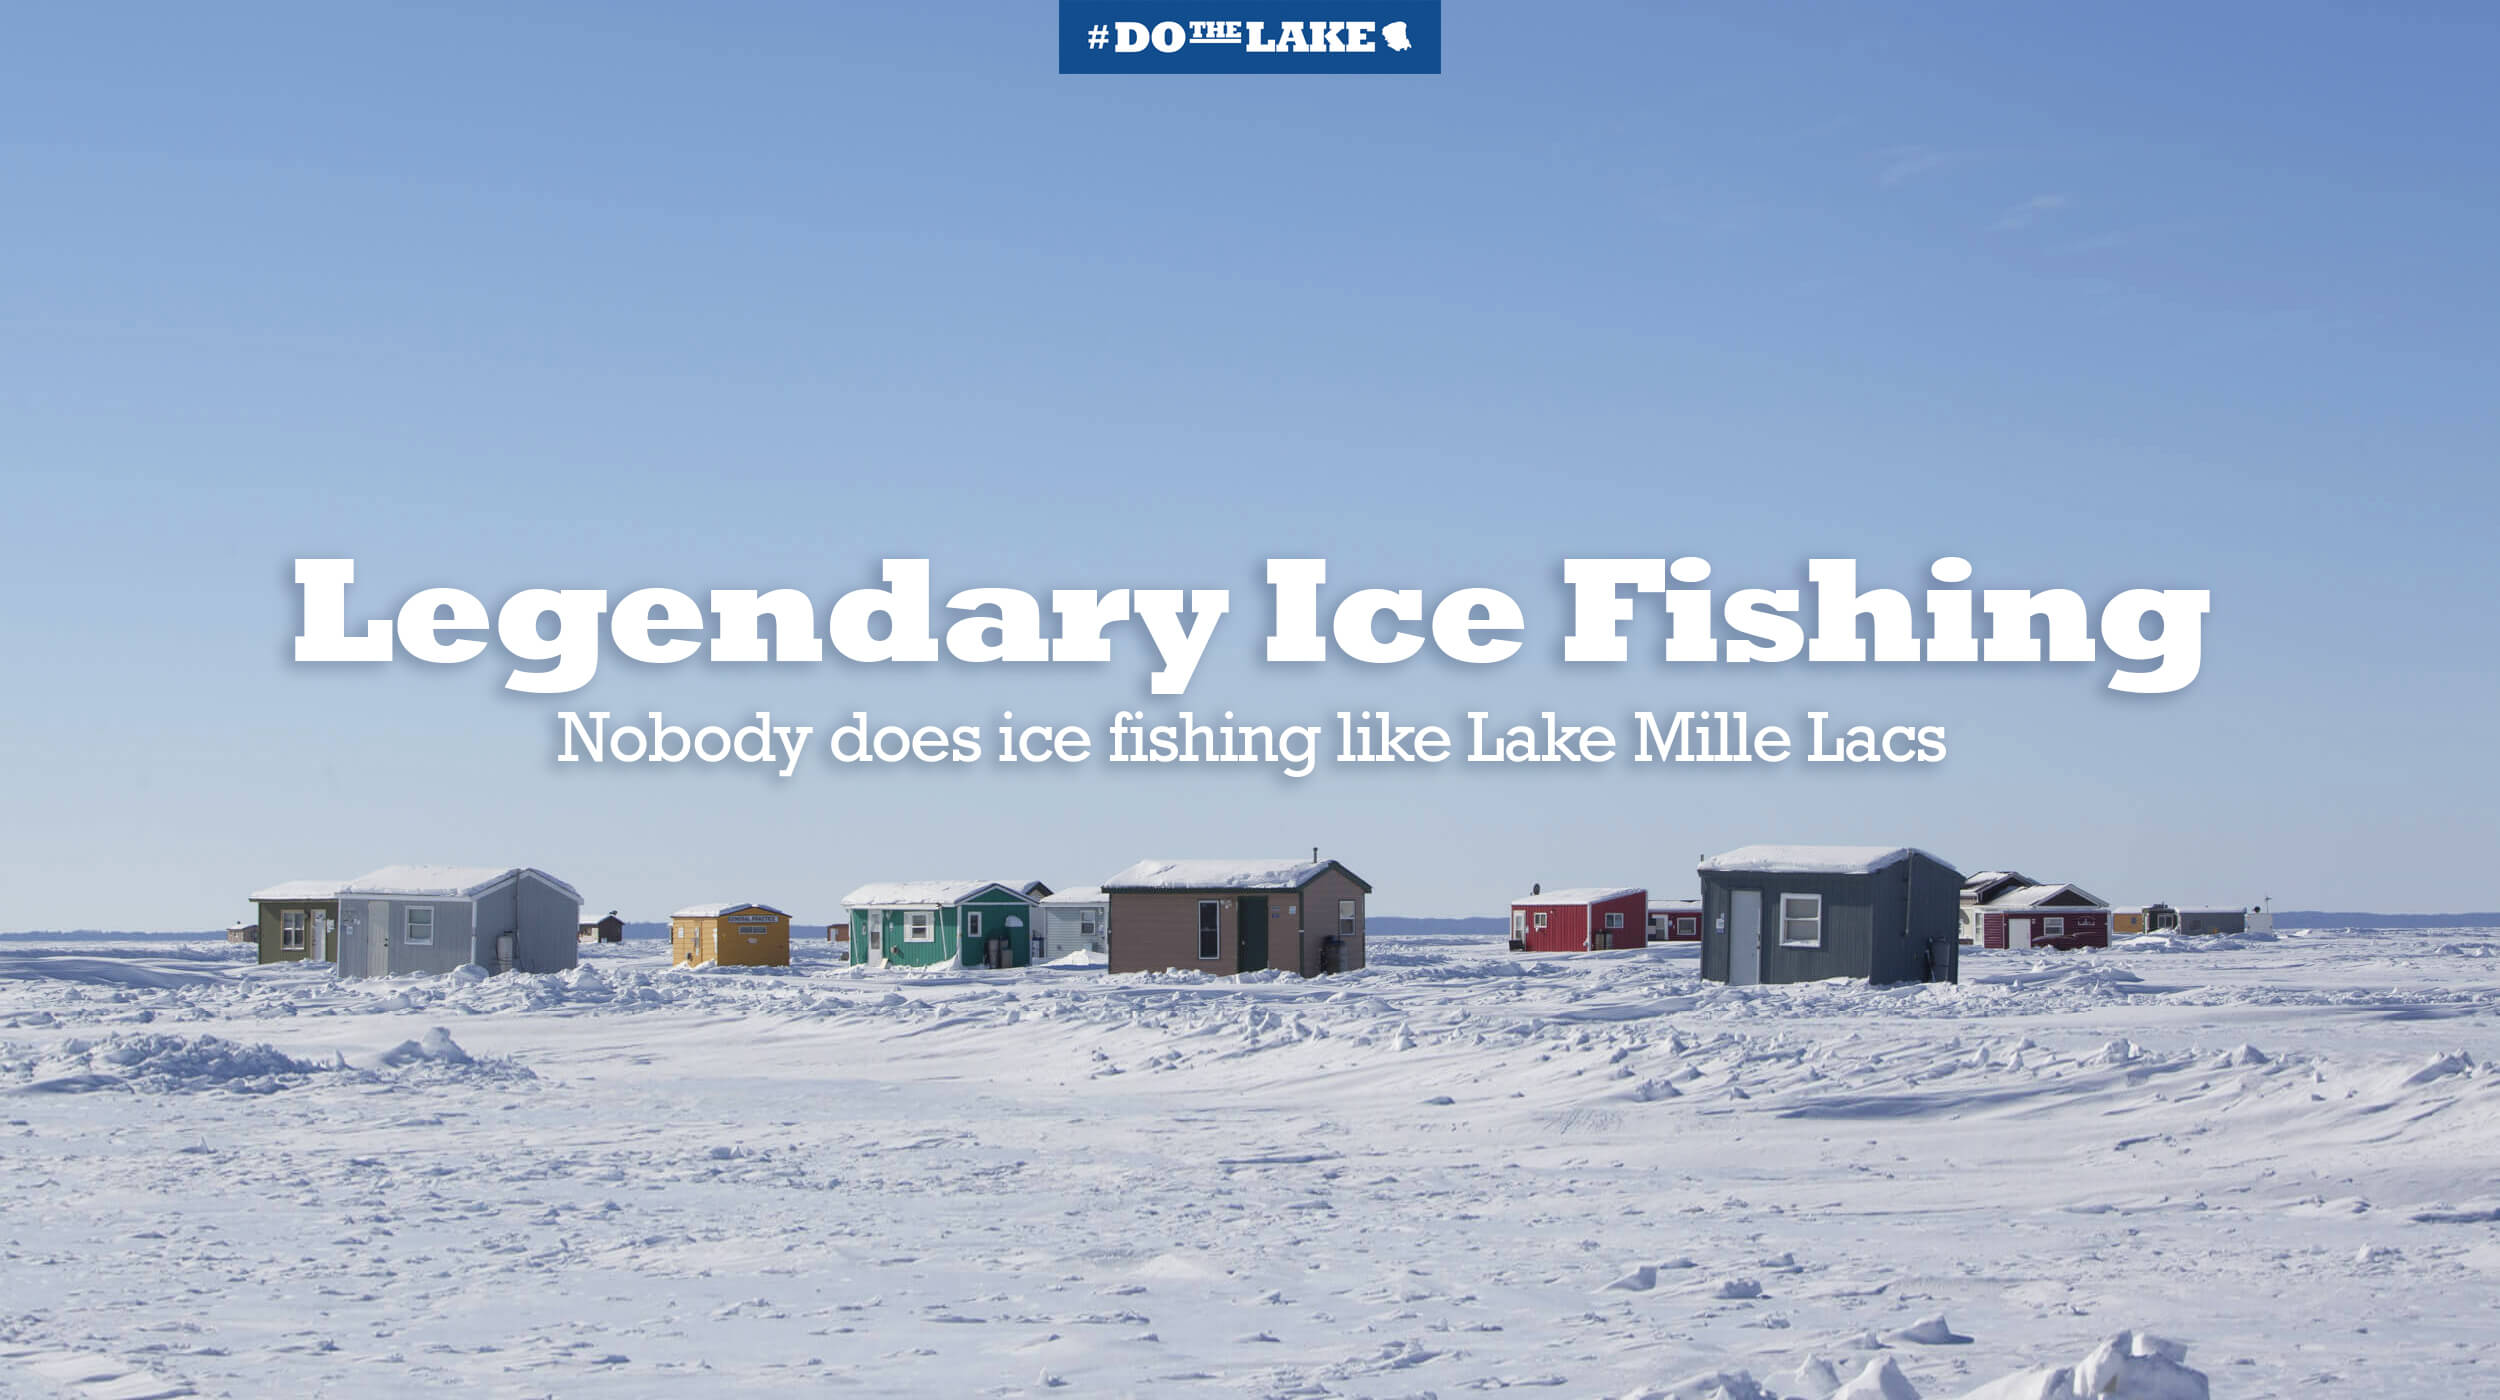 Legendary ice fishing houses